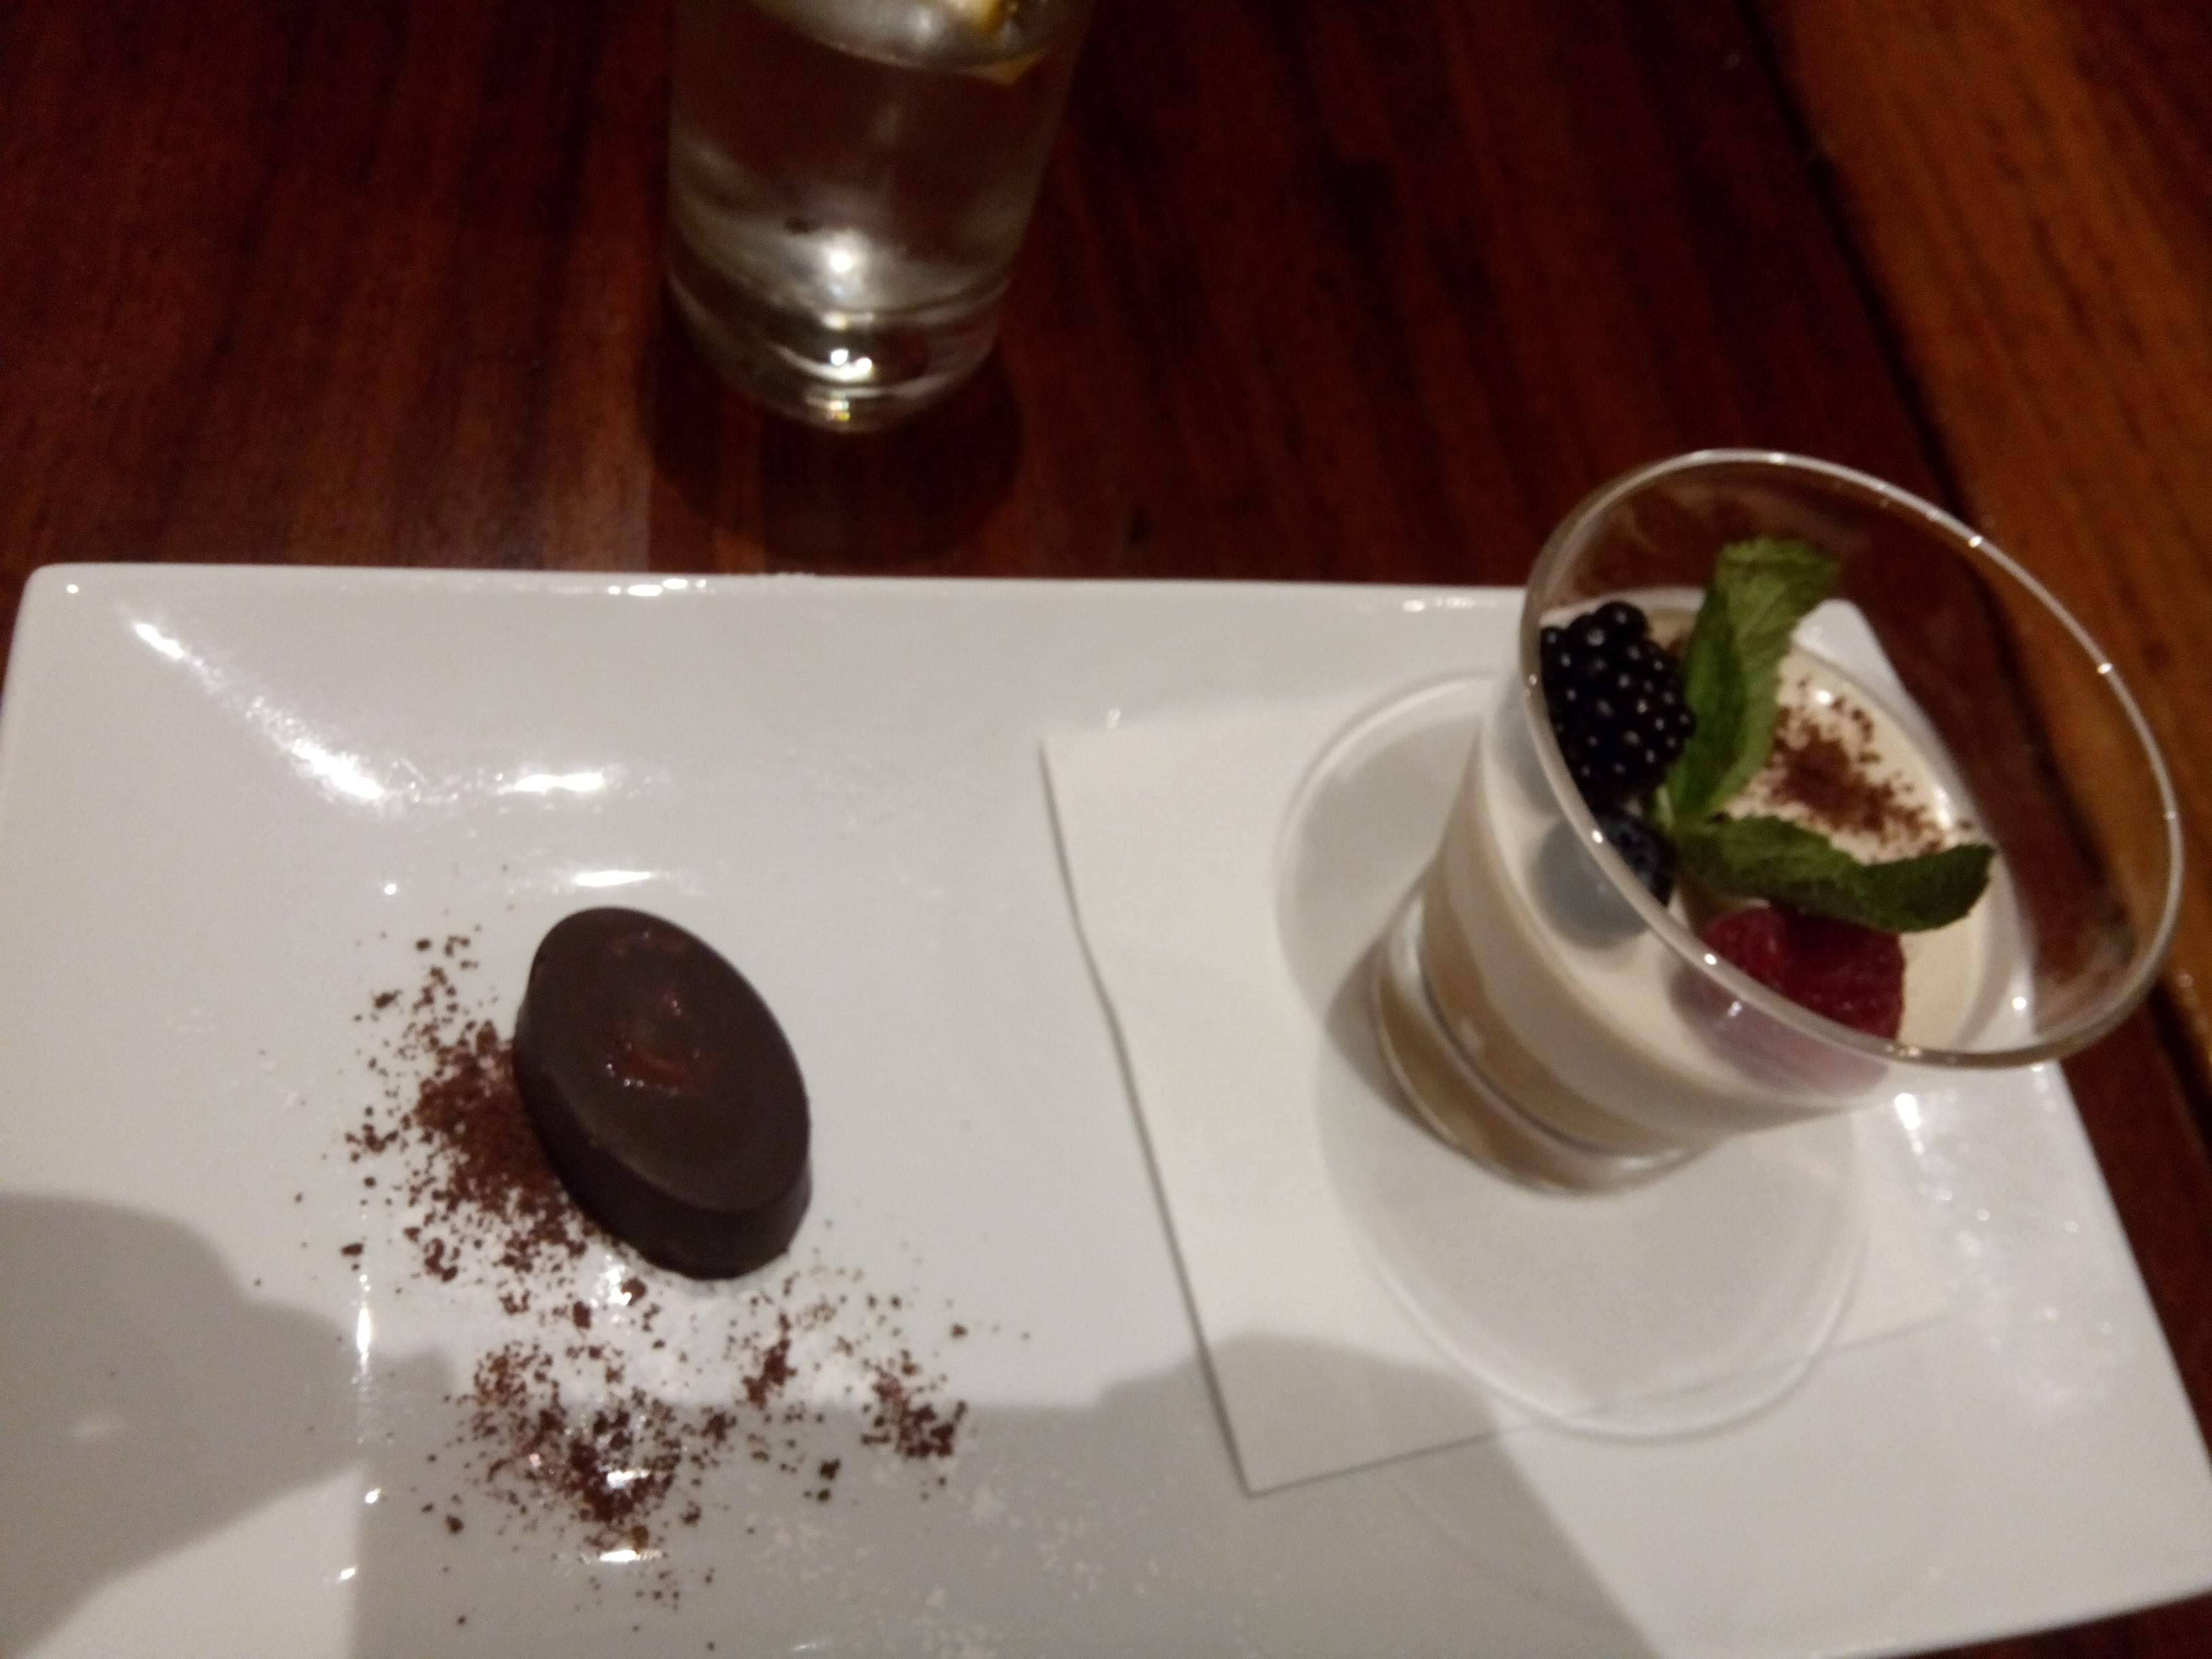 A creamy dessert in a glass alongside a chocolate on a plate